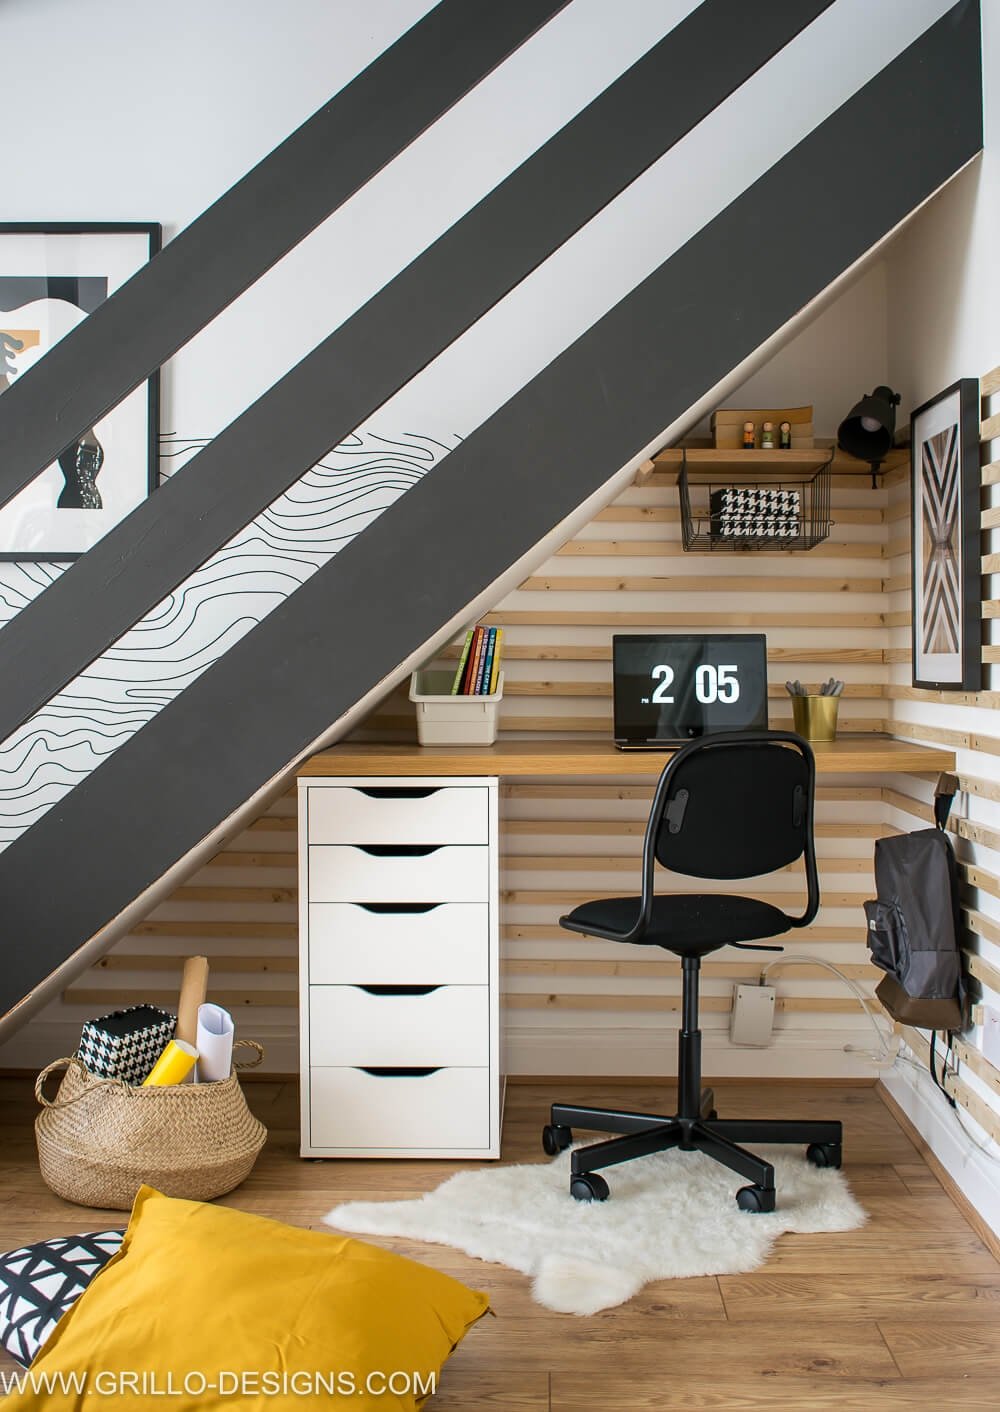 Diy Under Stairs Homework Station With Ikea • Grillo Designs | Space Under Staircase Design | Indoor | Clever | Innovative | Wooden | Understairs